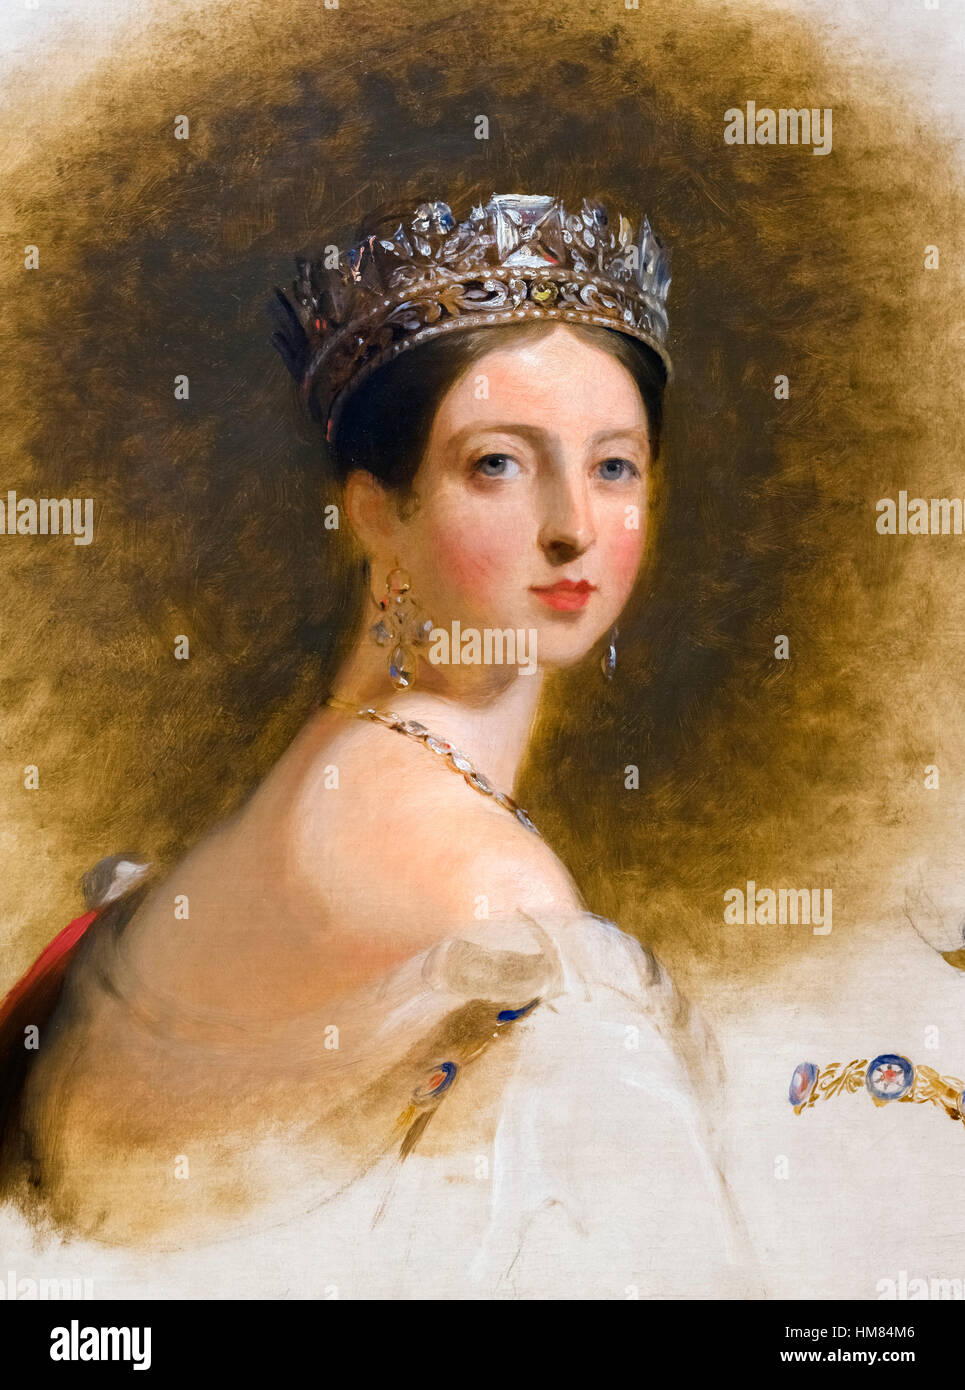 Queen Victoria by Thomas Sully, oil on canvas, 1838. - Stock Image